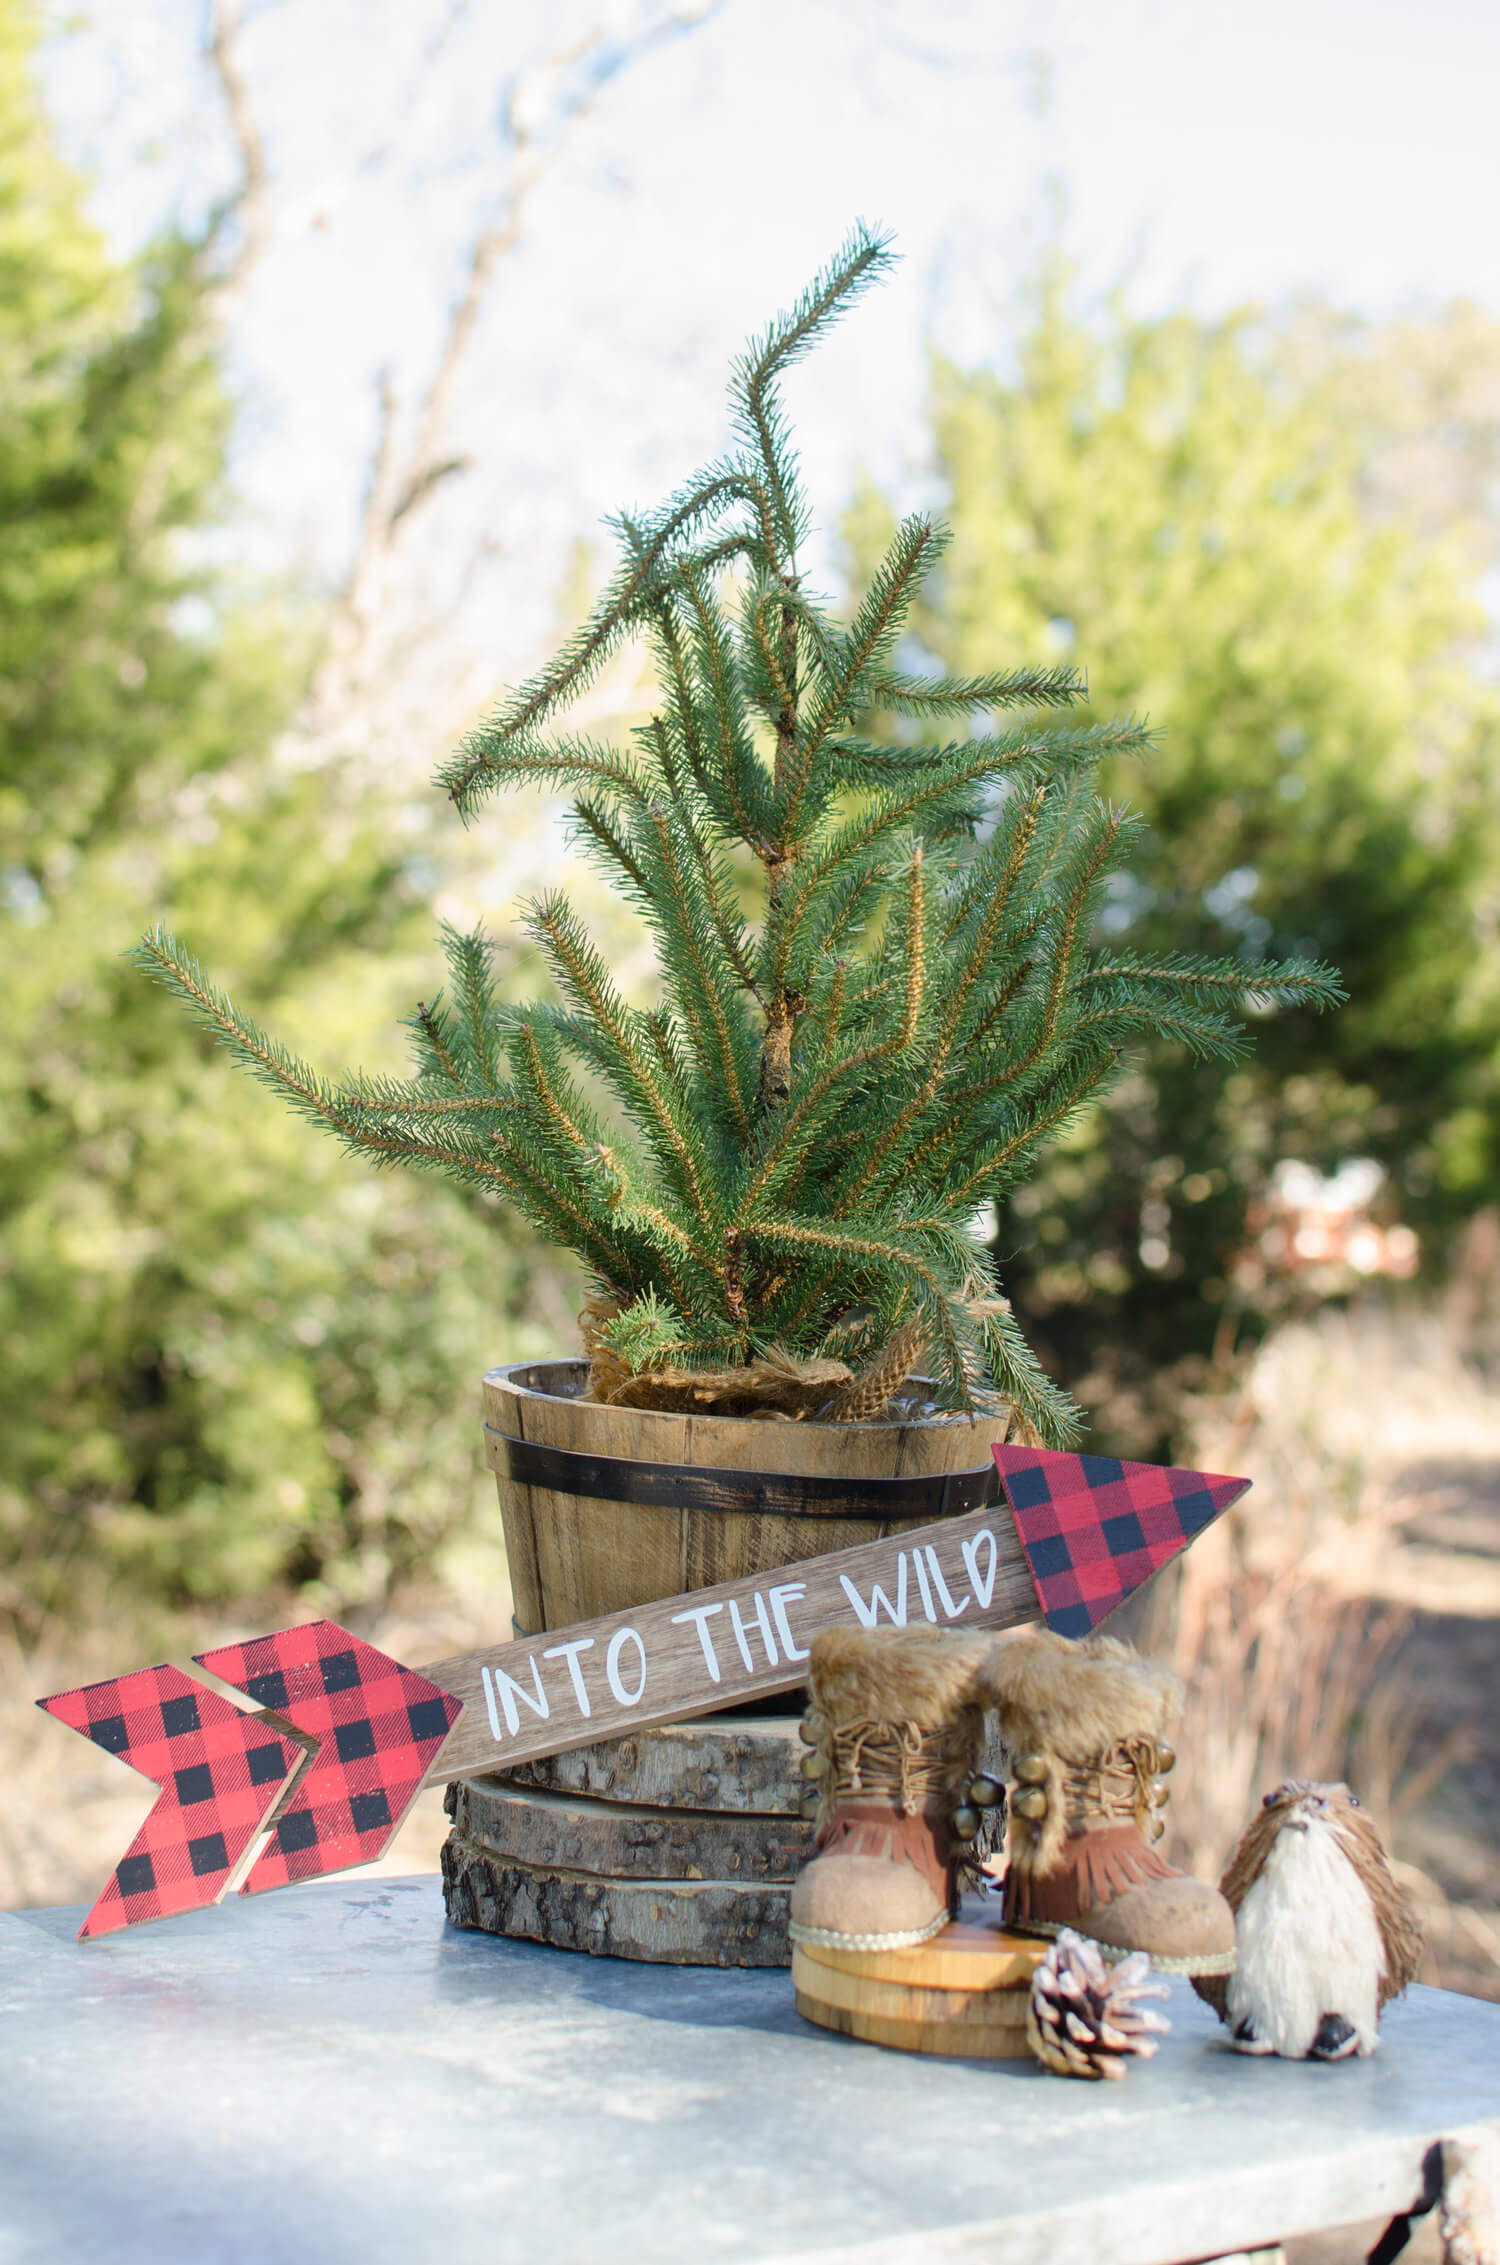 Lumberjack party ideas / Lumberjack party decor / lumberjack dessert table / First Birthday party ideas for boys / winter party ideas / outdoor party ideas / styled by Carolina from MINT Event Design / www.minteventdesign.com